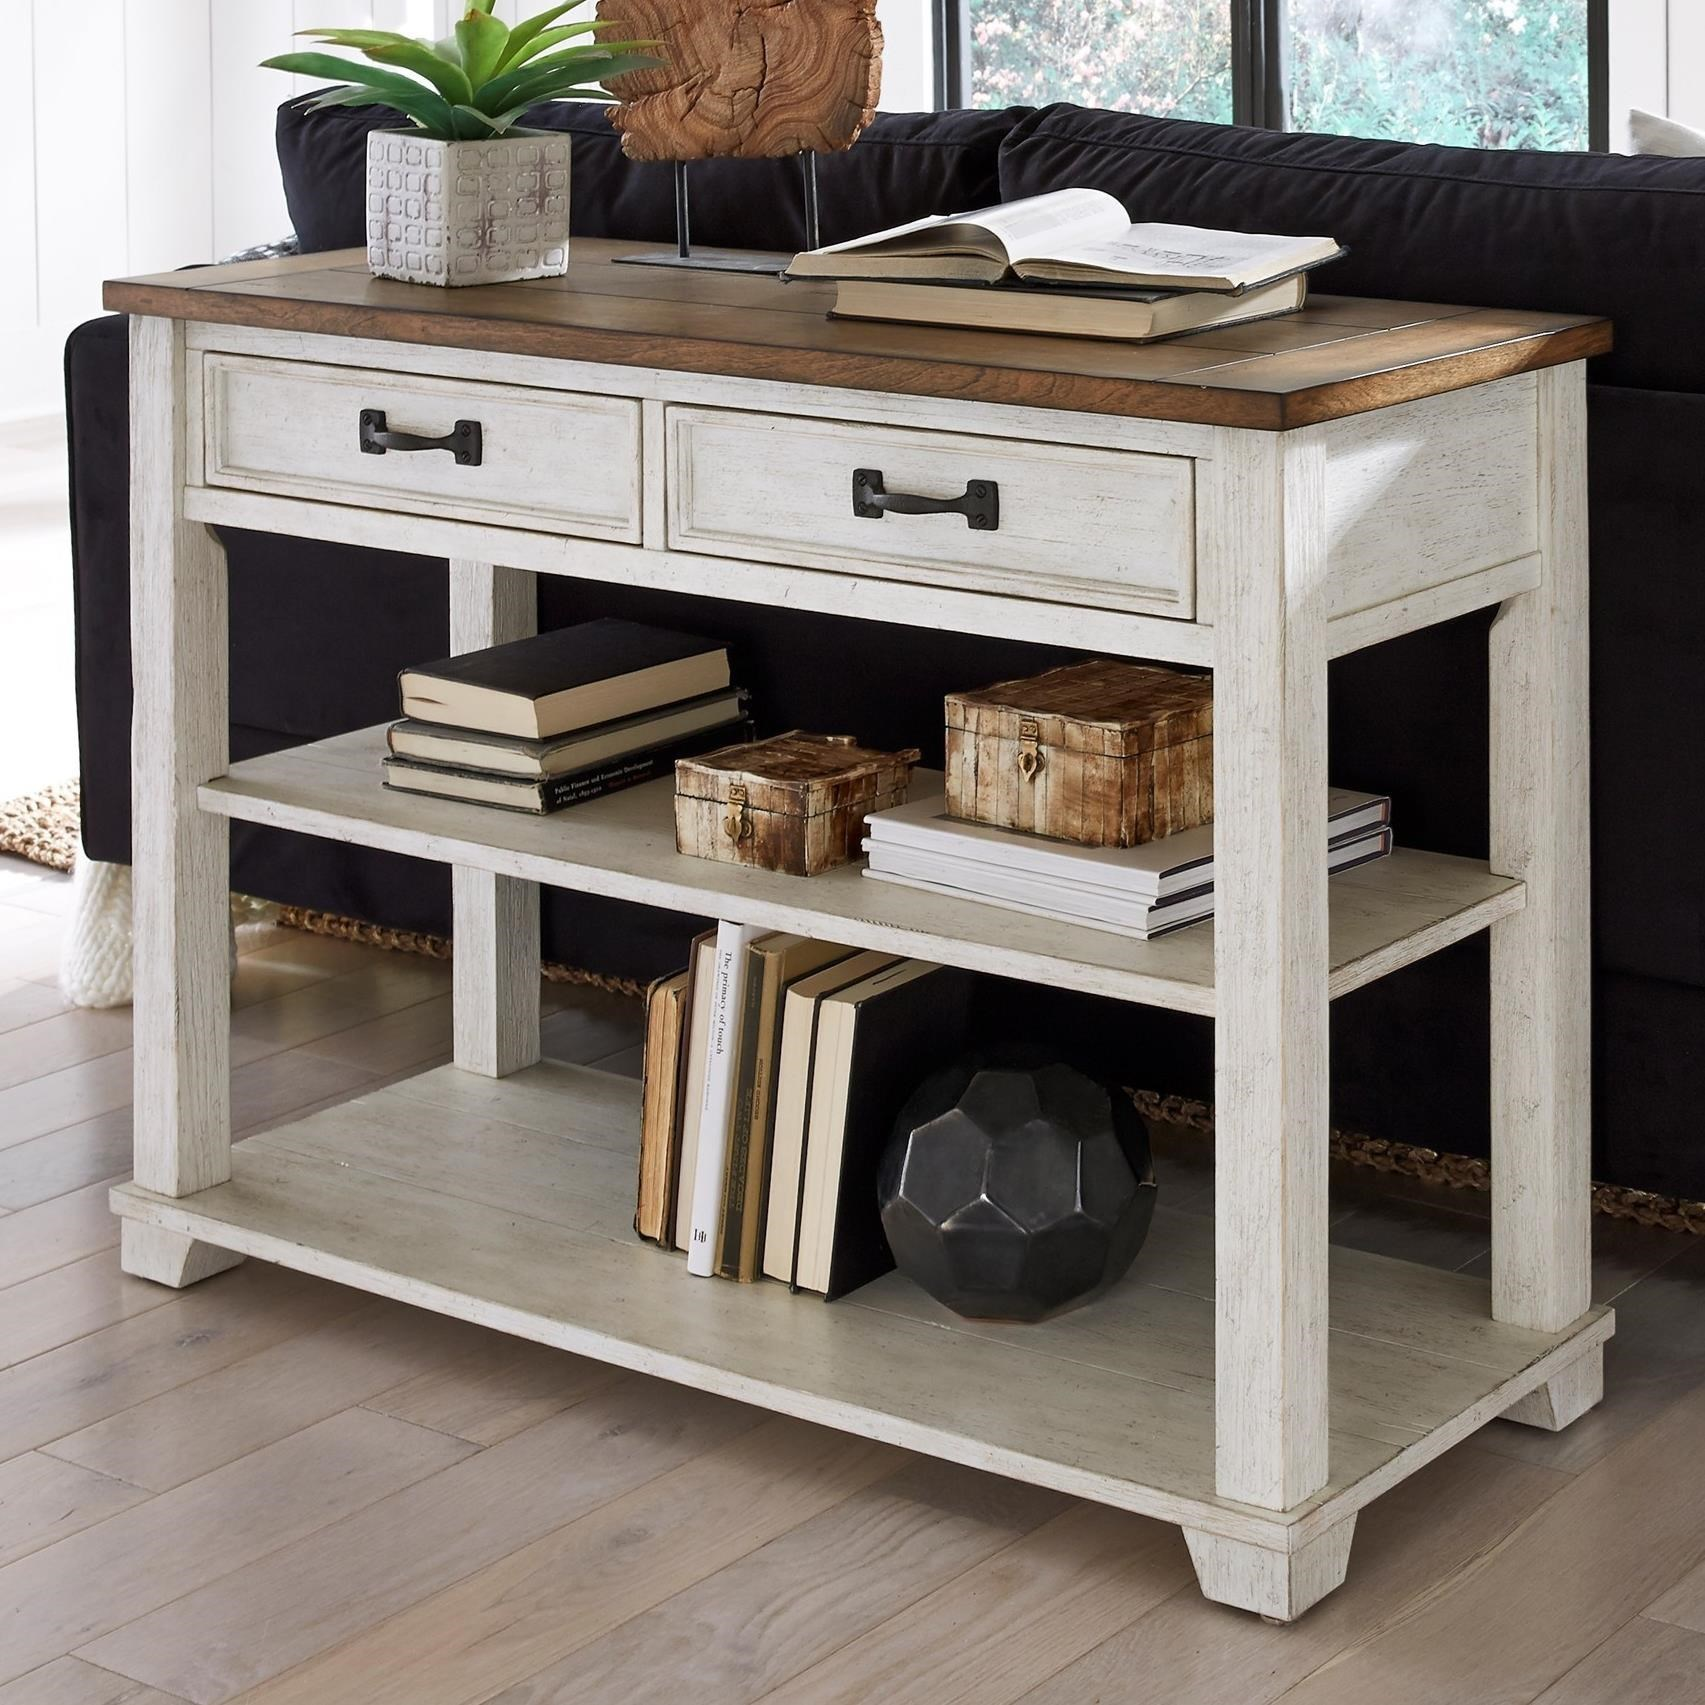 5519 Sofa/Media Console Table by Null Furniture at Westrich Furniture & Appliances